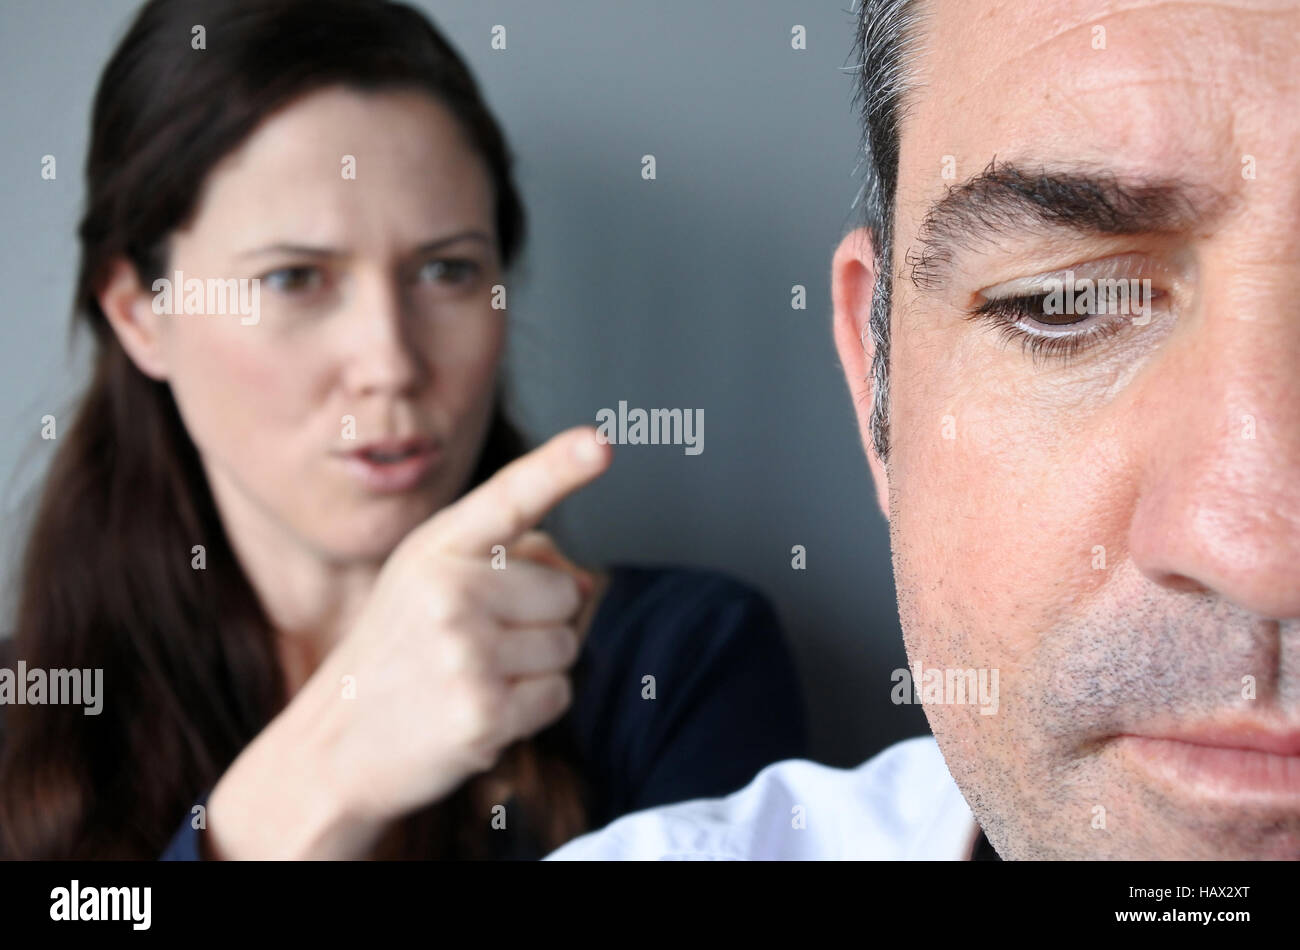 Portrait of woman blaming her husband. Unhappy couple who have fallen out over a disagreement. Man in the front - Stock Image